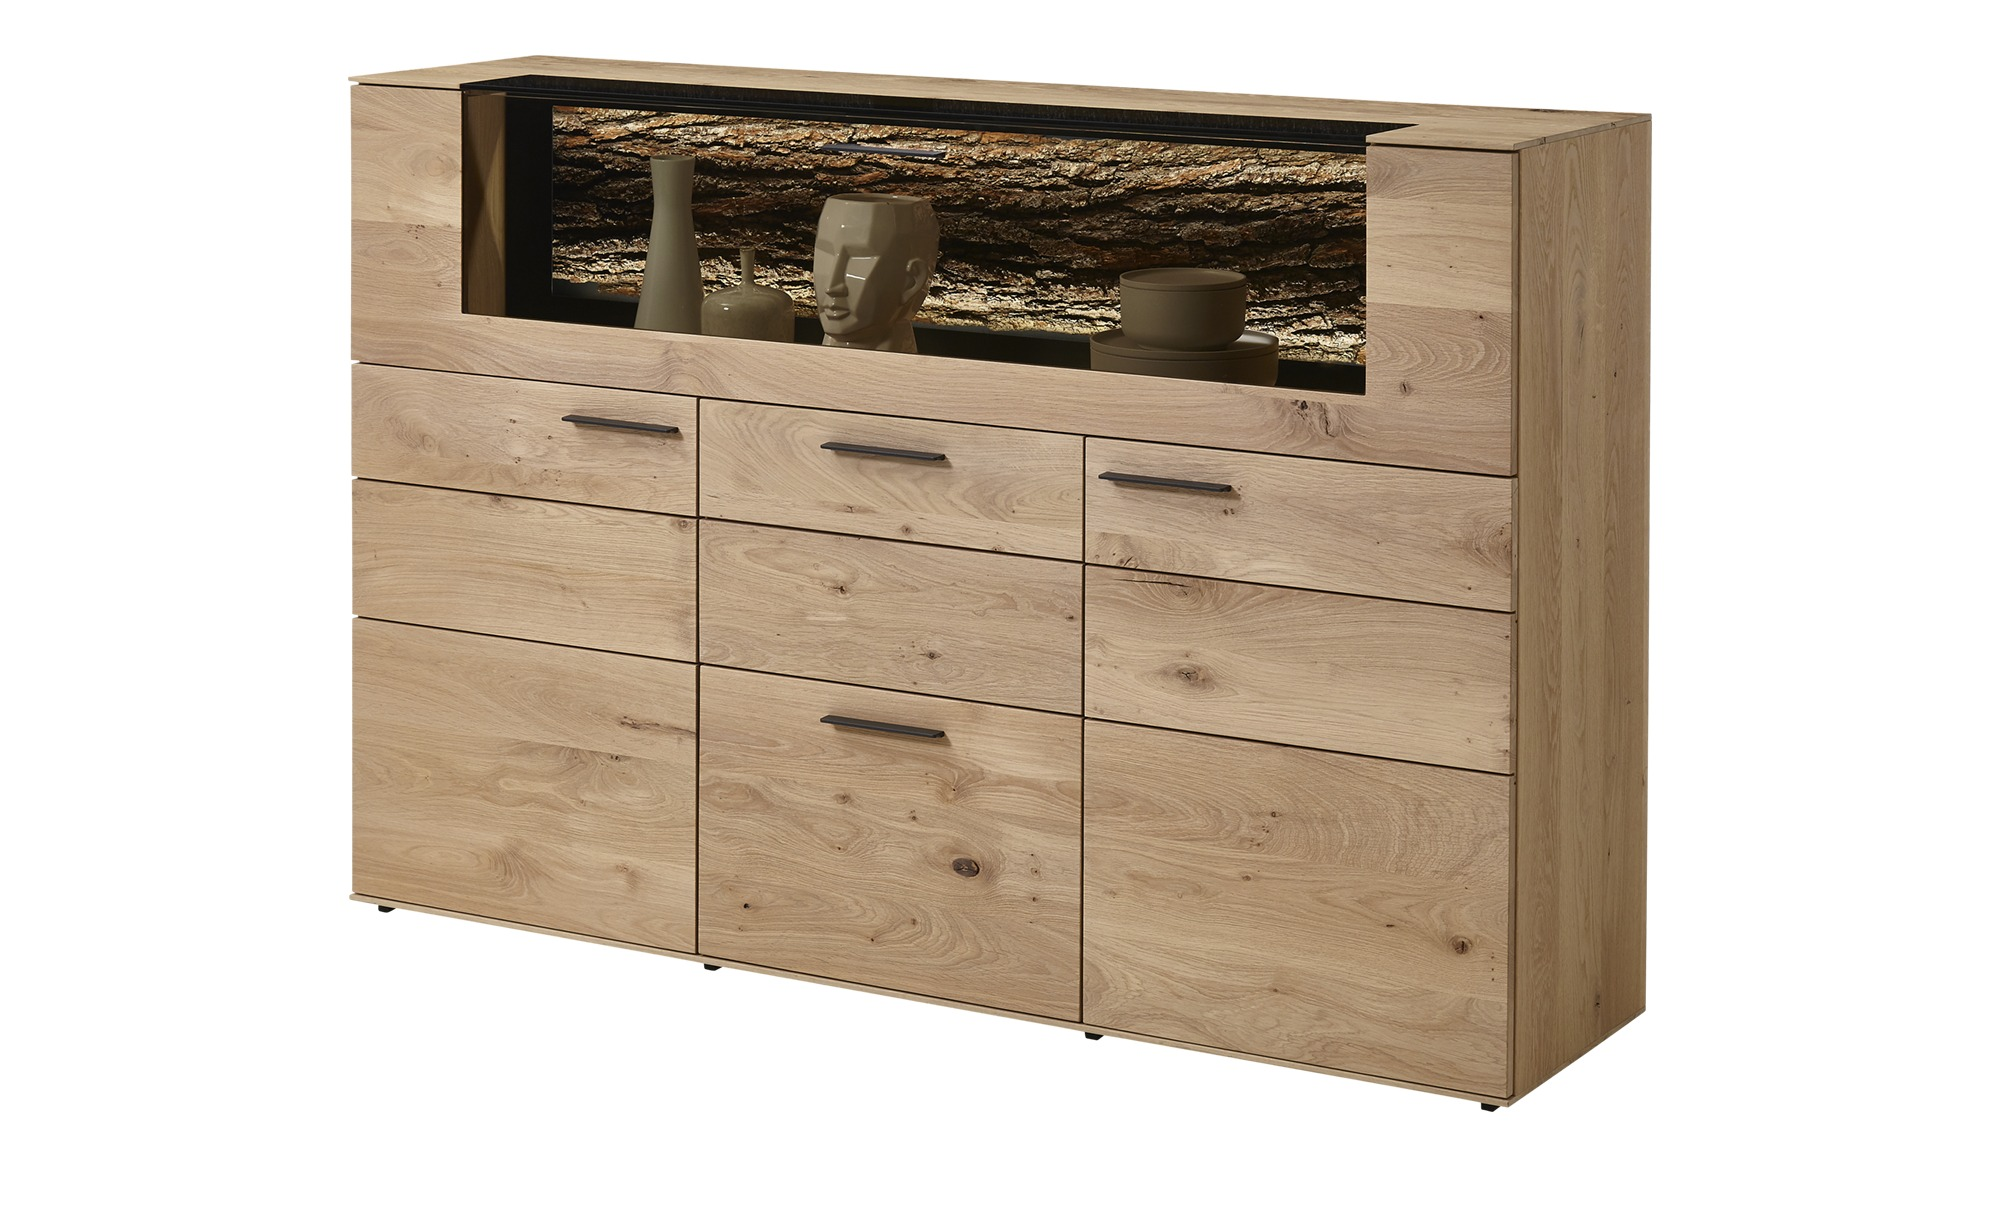 Westerburg Highboard  Ronja ¦ holzfarben ¦ Maße (cm): B: 173 H: 116 T: 44 Kommoden & Sideboards > Highboards - Höffner